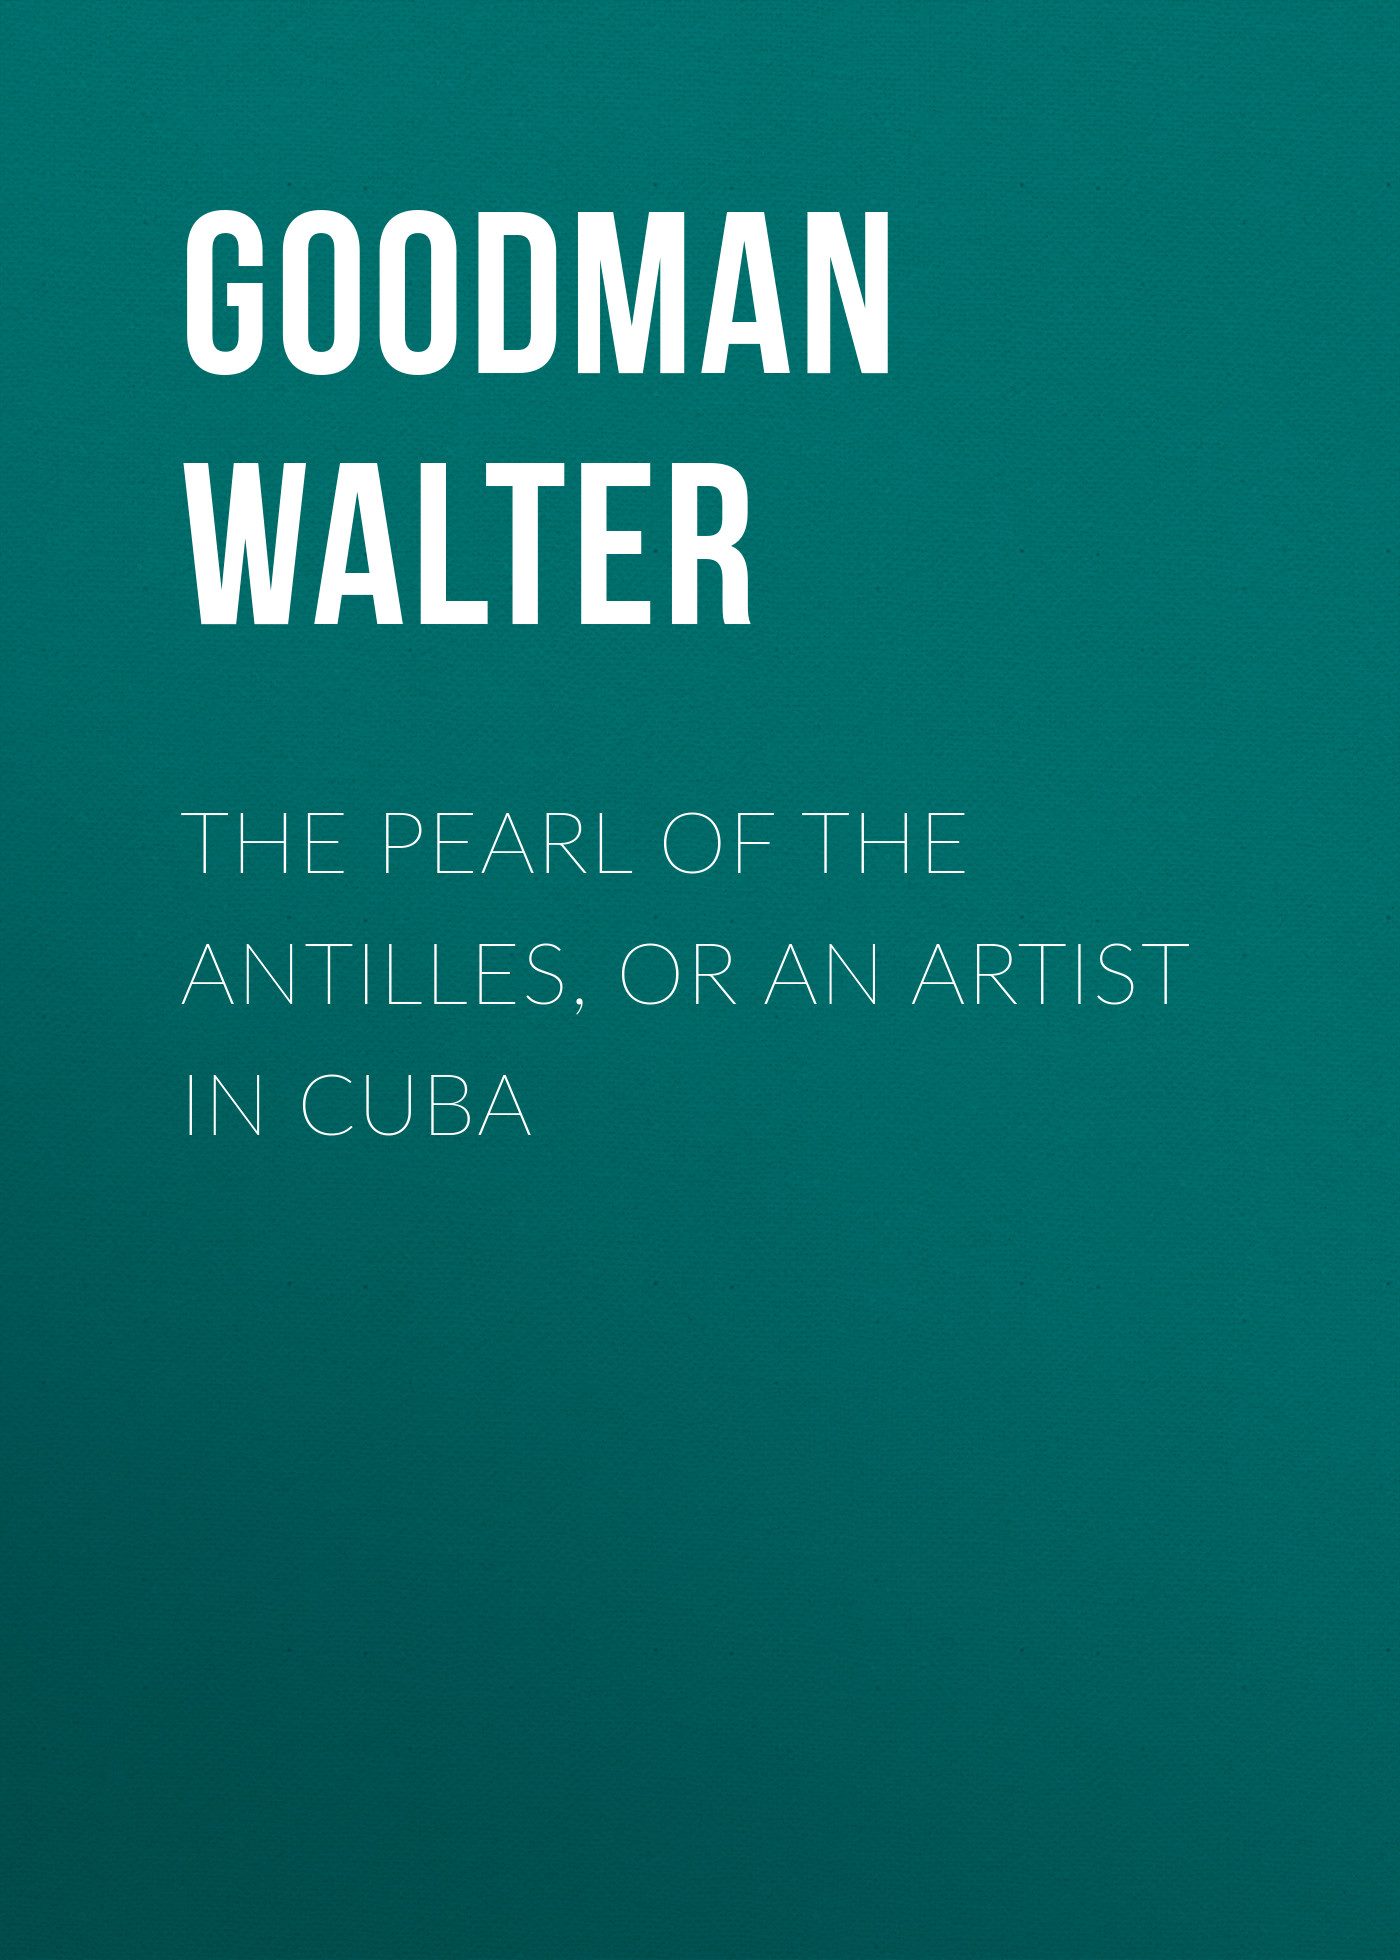 Goodman Walter The Pearl of the Antilles, or An Artist in Cuba negotiating the artist